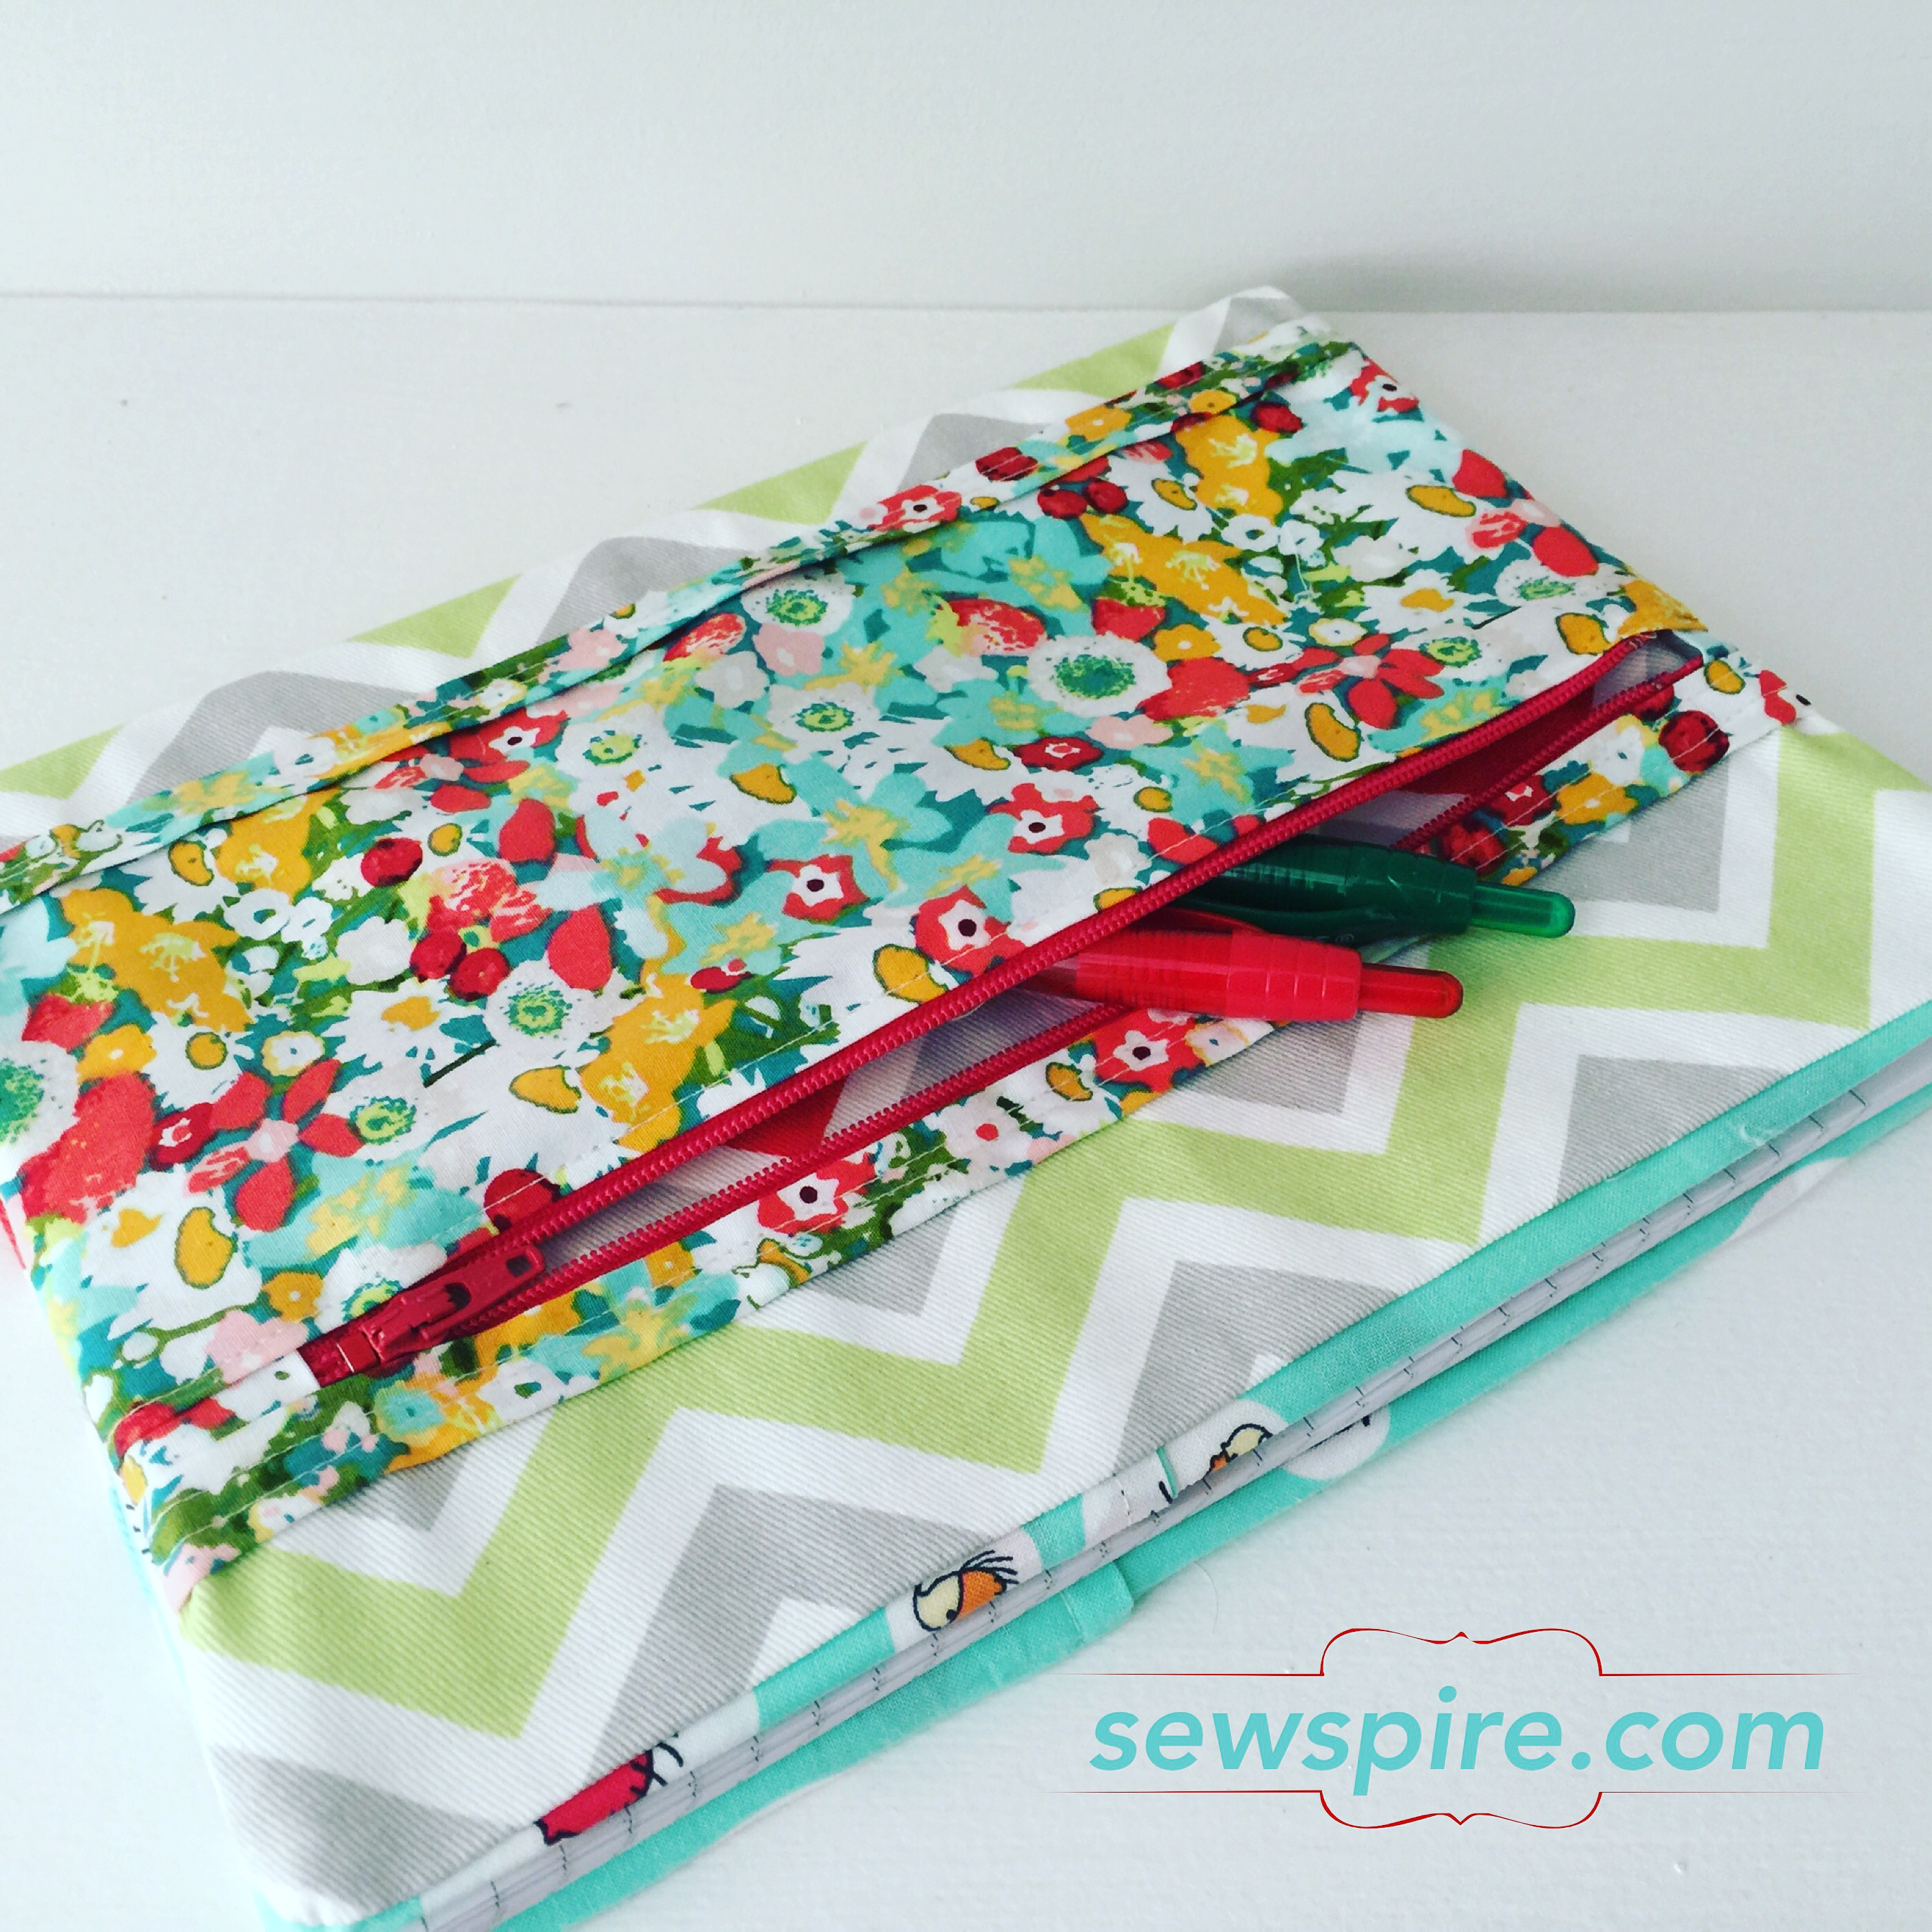 Book Cover Sewing Zippers ~ Zippered pocket sewspire